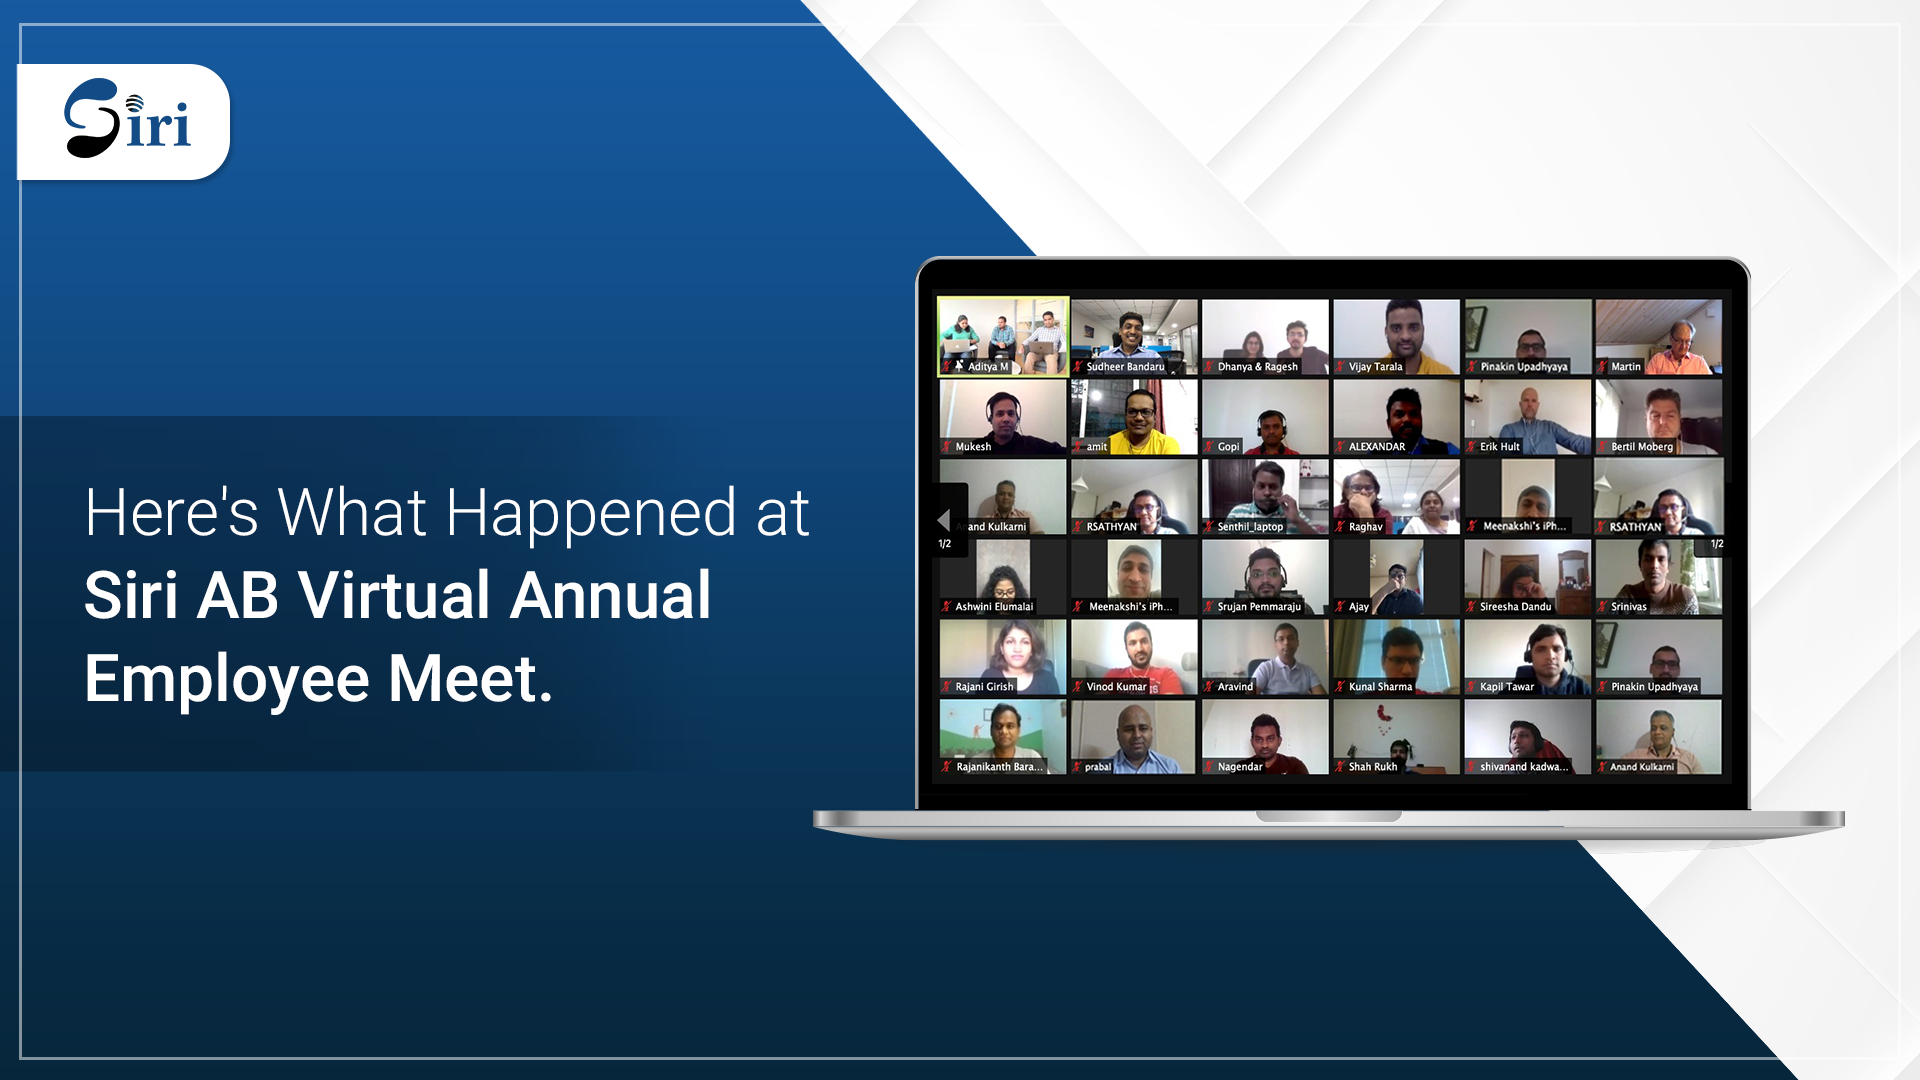 Here's What Happened at SiriAB Virtual Annual Employee Meet 2021